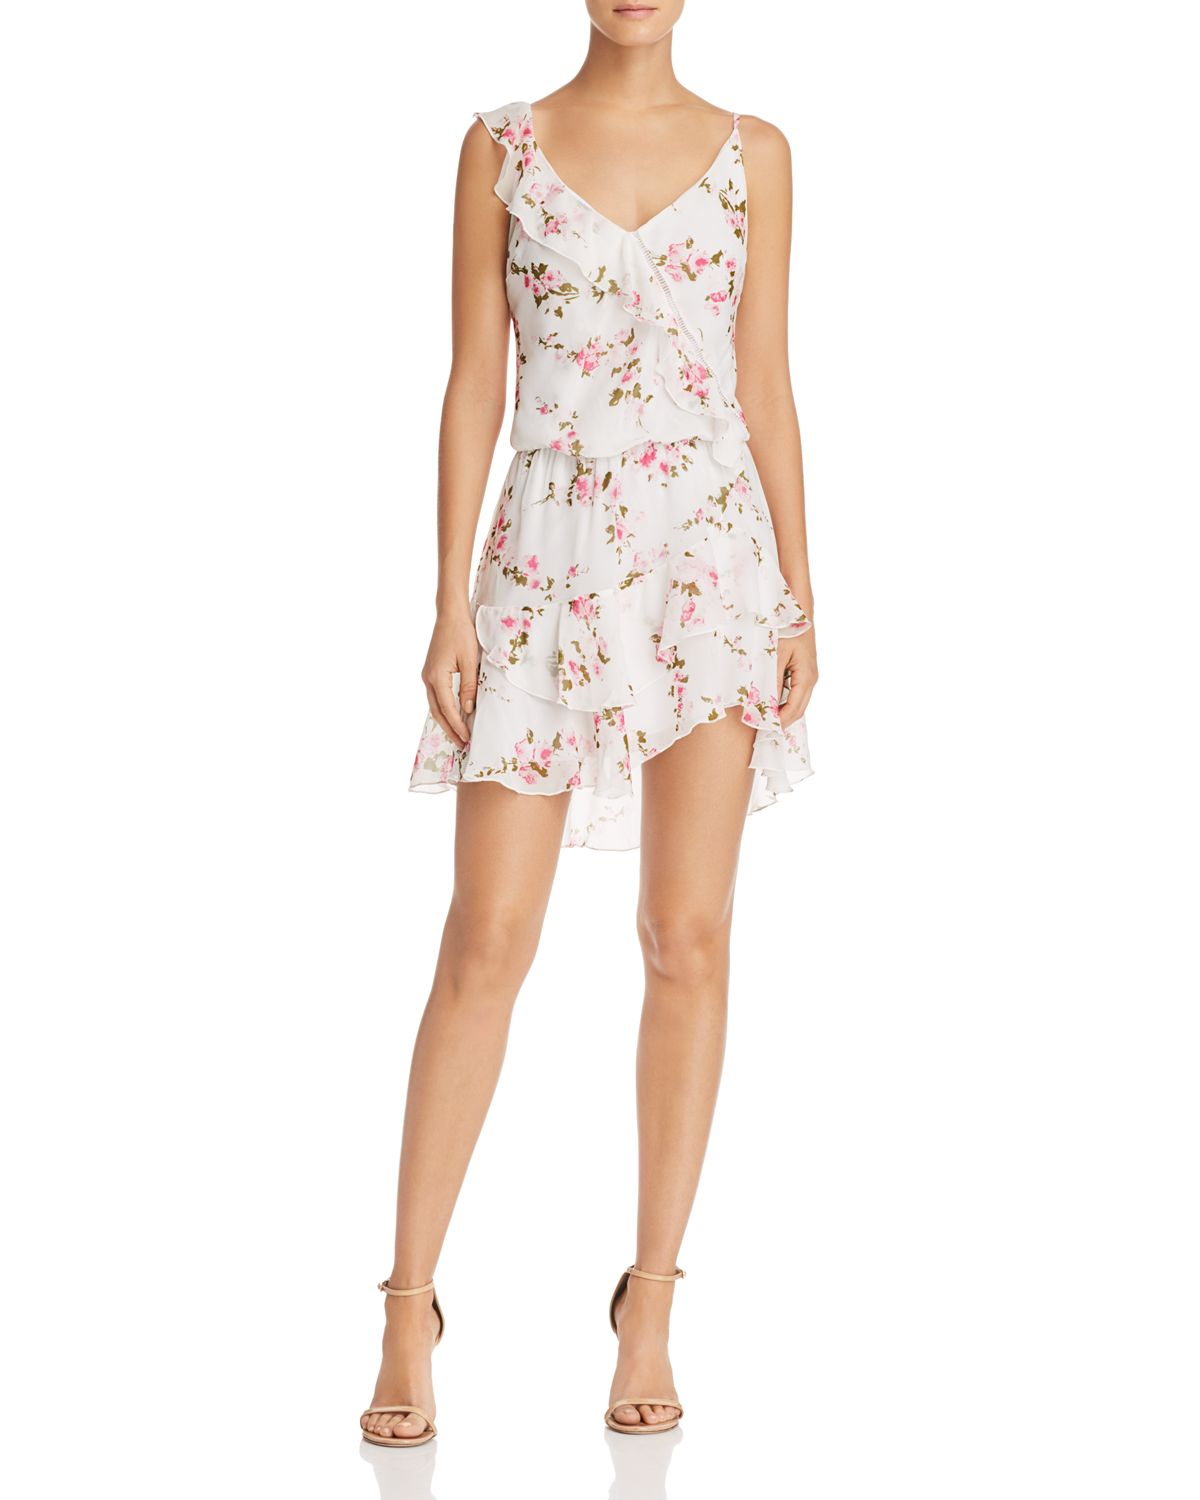 Paloma Floral Print Ruffled Dress by Karina Grimaldi